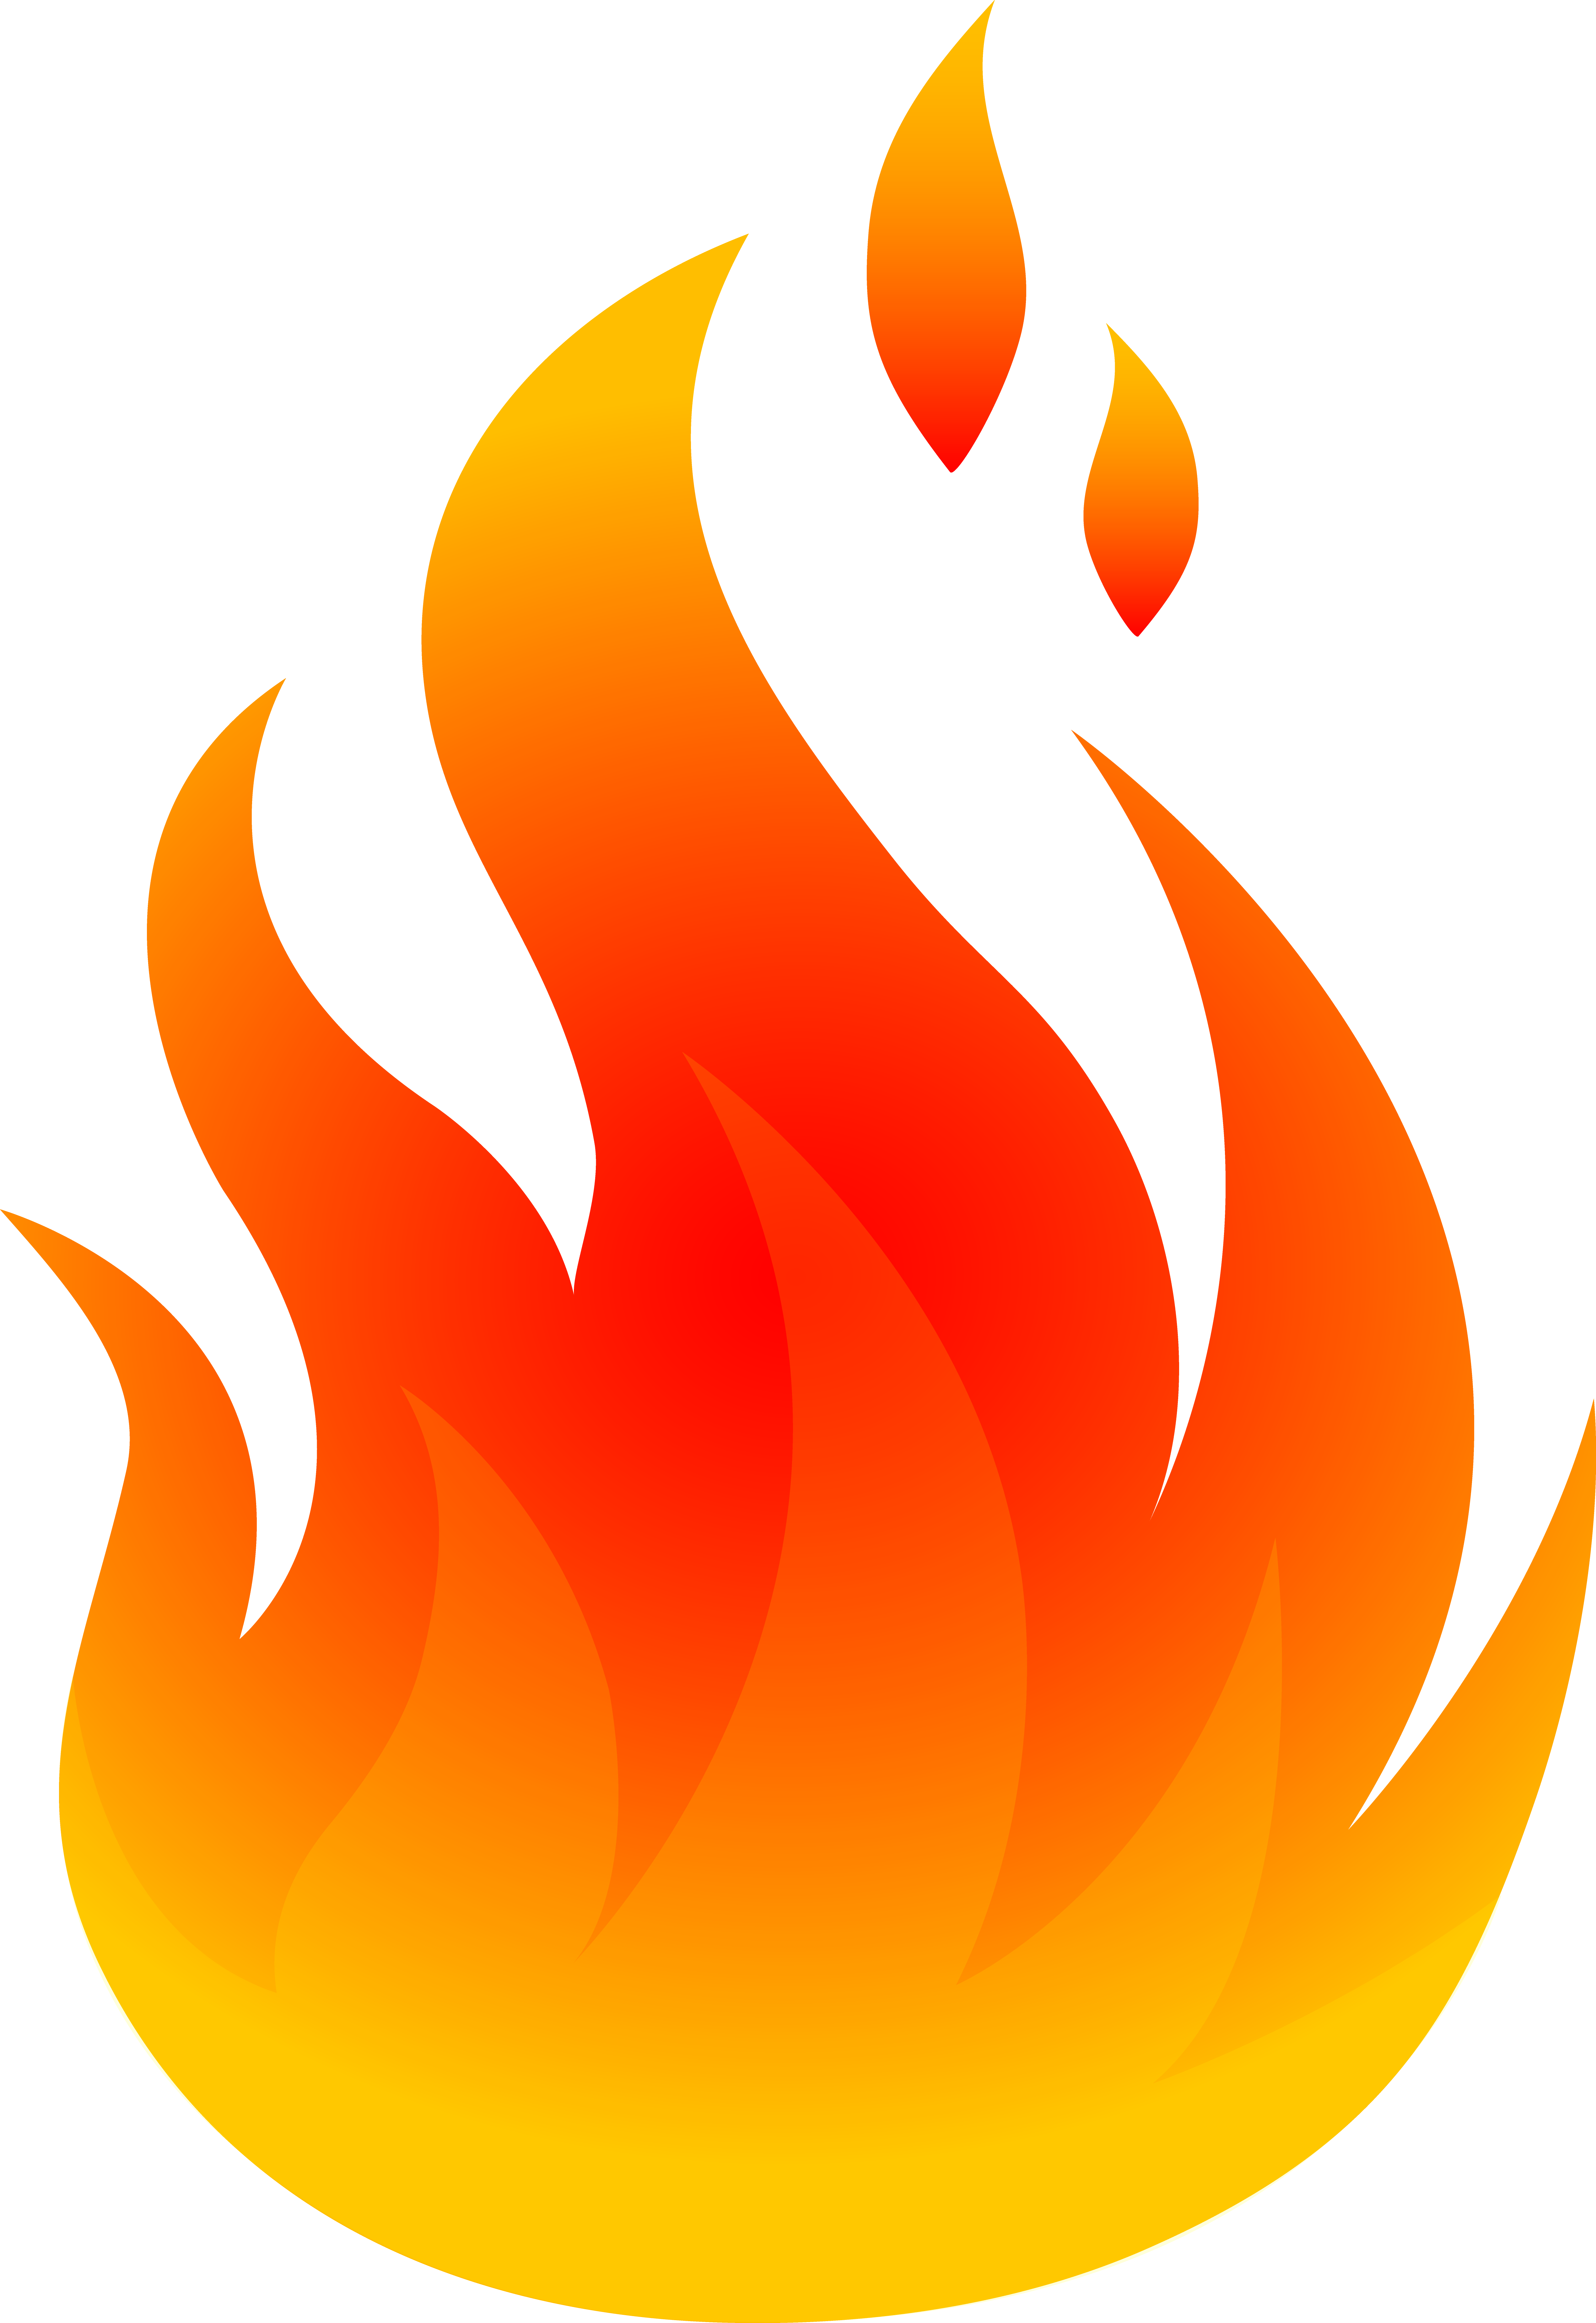 Free fire vector.